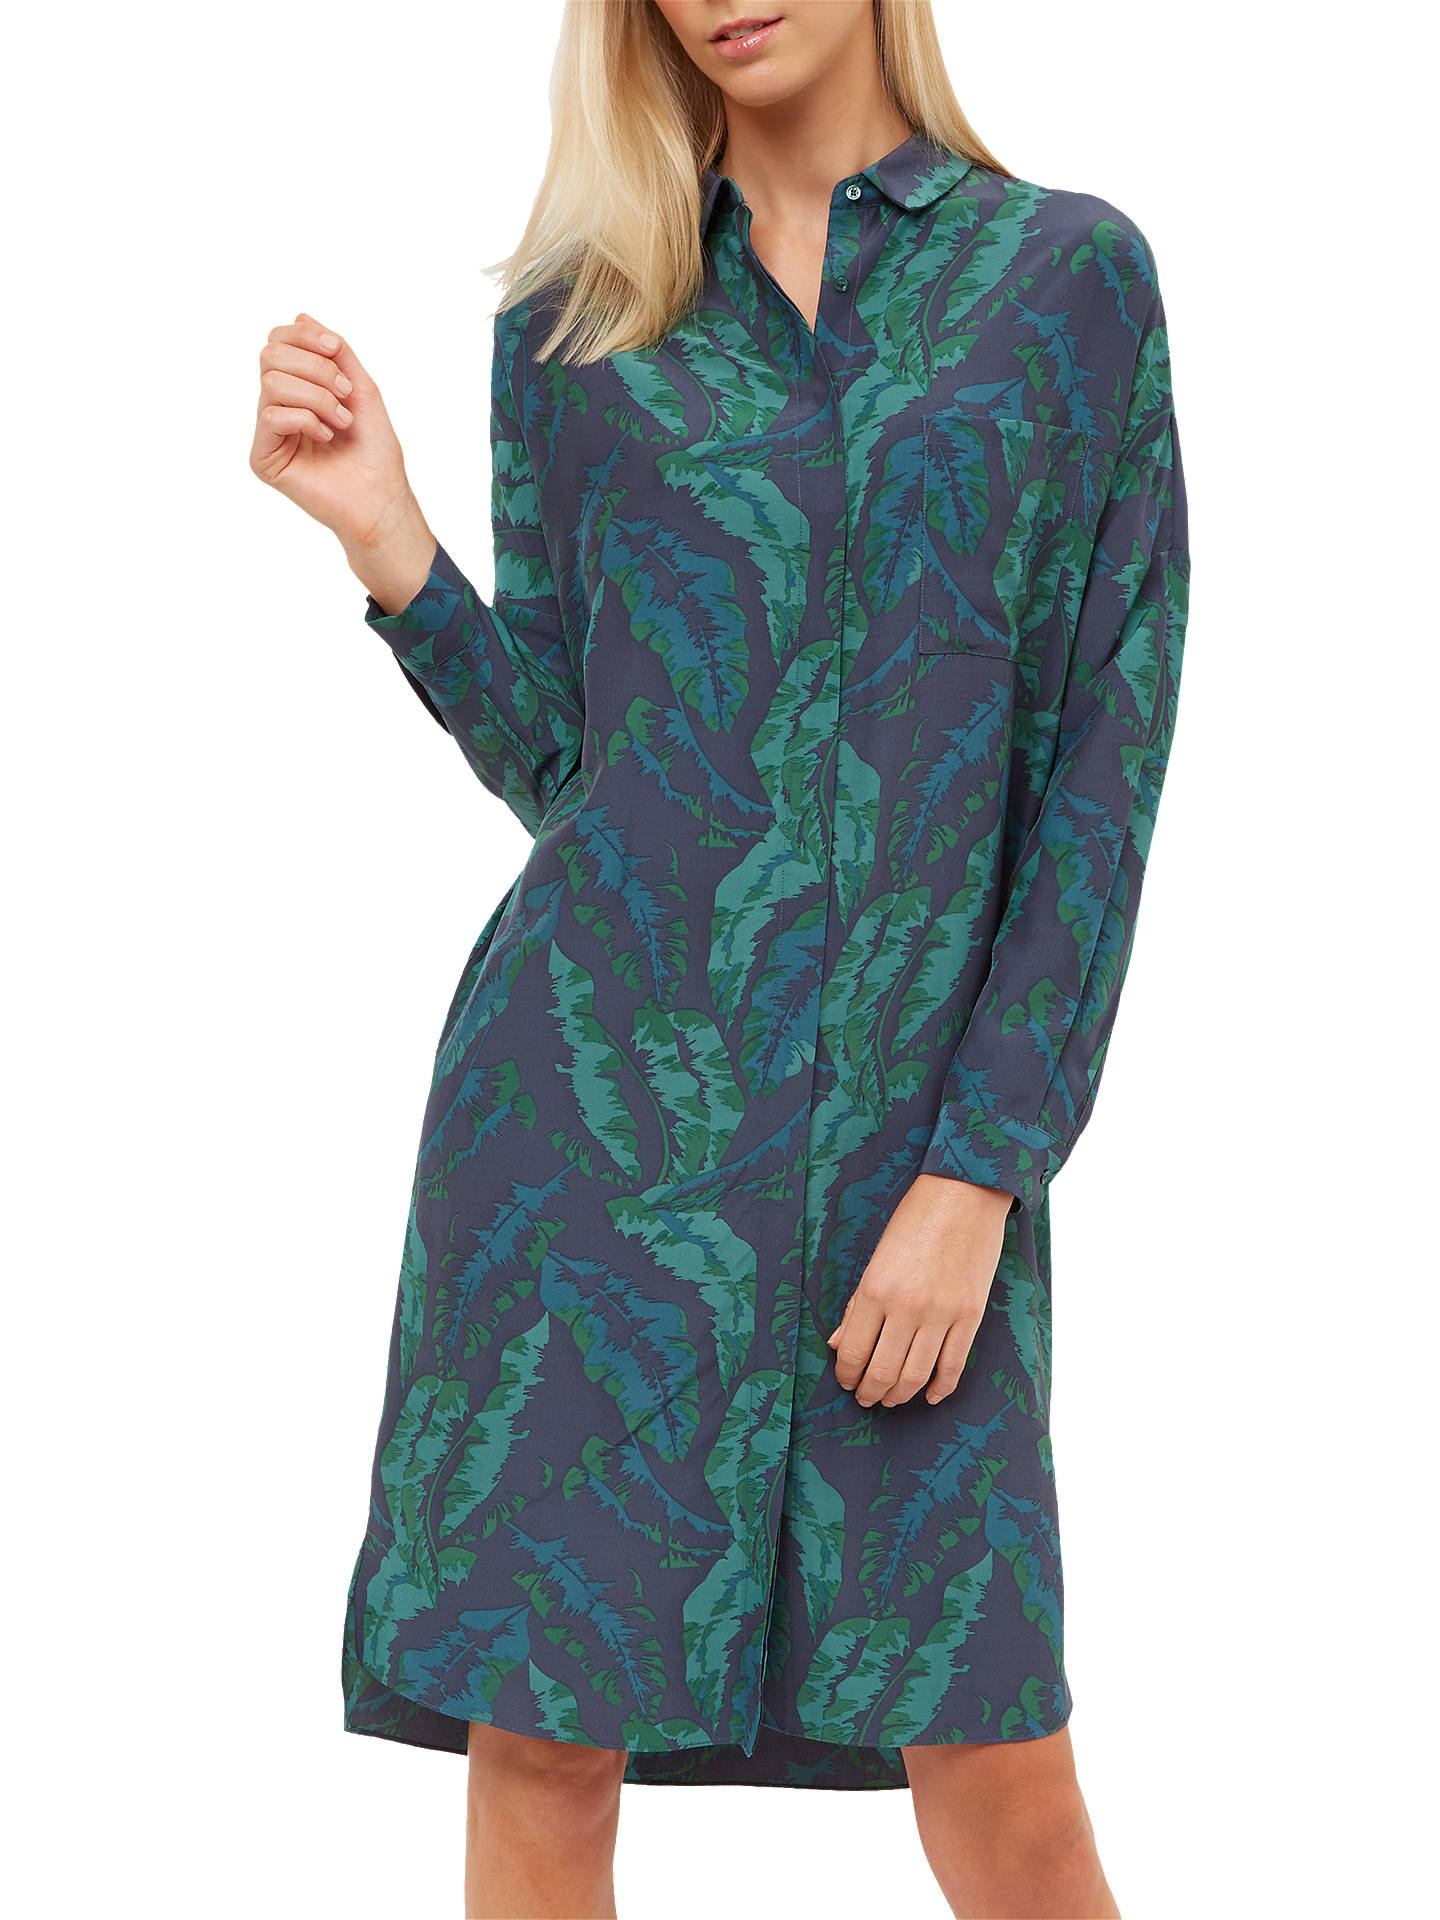 bbd7d02e2a063 Jaeger Banana Leaf Print Dress, Green at John Lewis & Partners